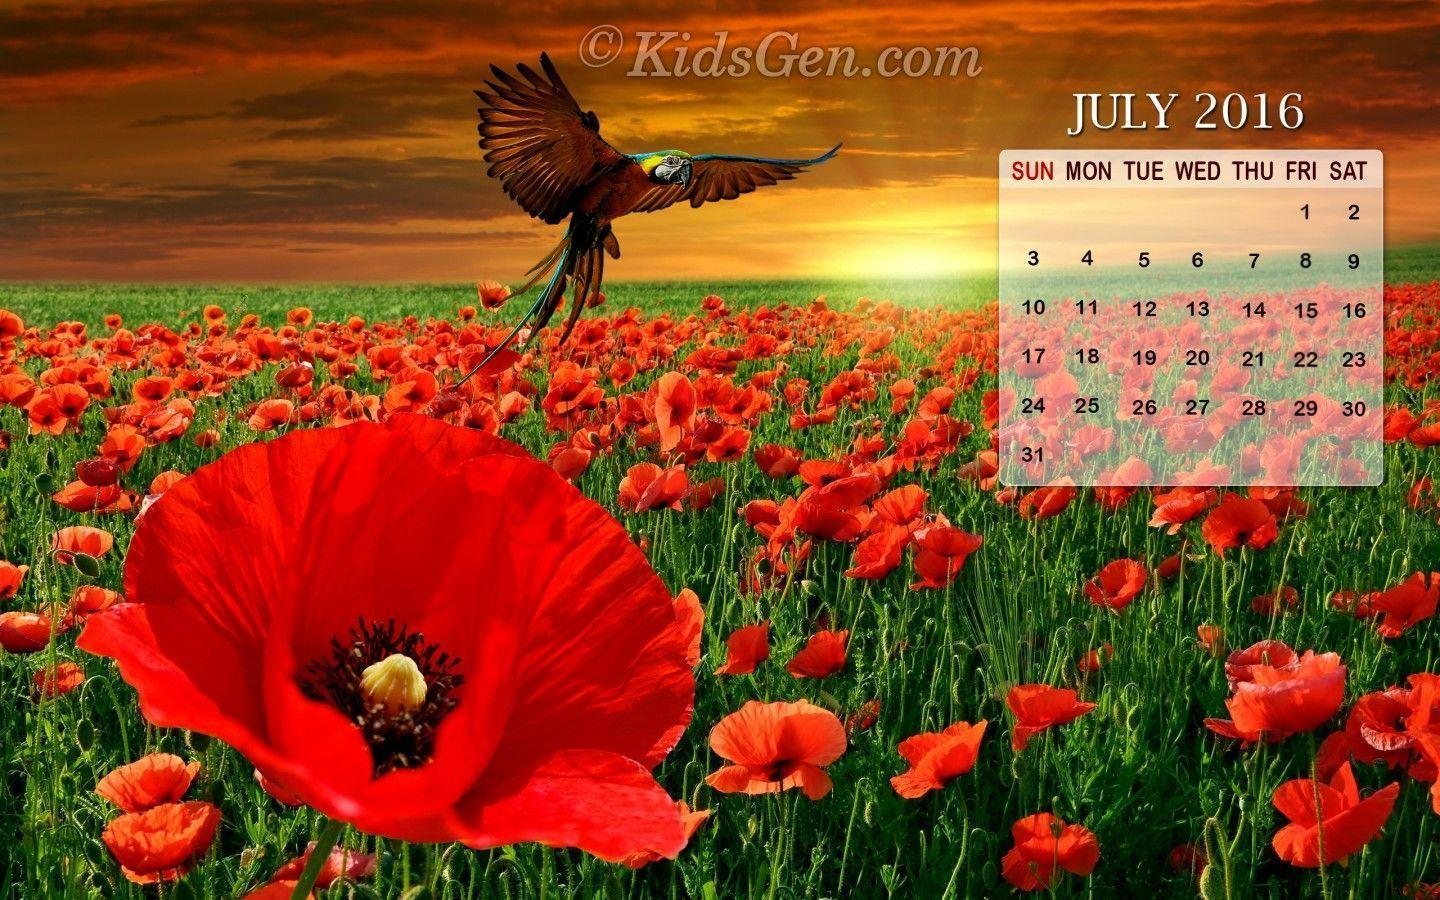 Desktop Wallpapers Calendar July 2016 1440x900